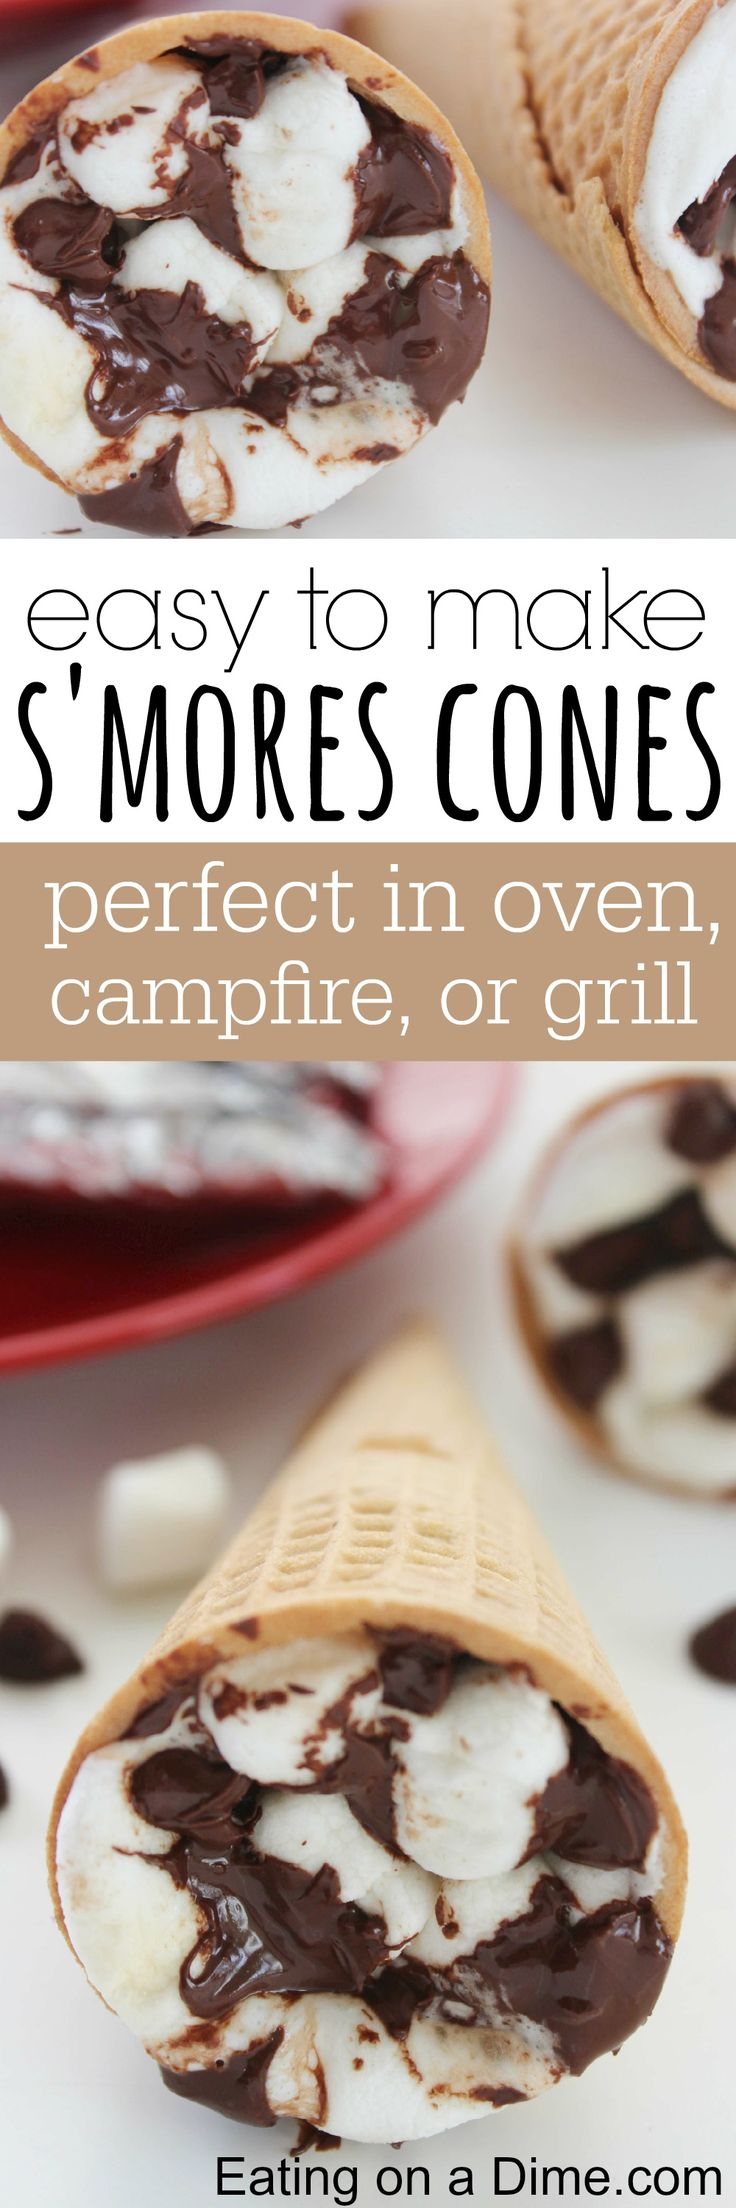 You just have to try these S'Mores Campfire Cones  with the family. They will love them. I love it because you can make it in the oven, on the campfire or on the grill.